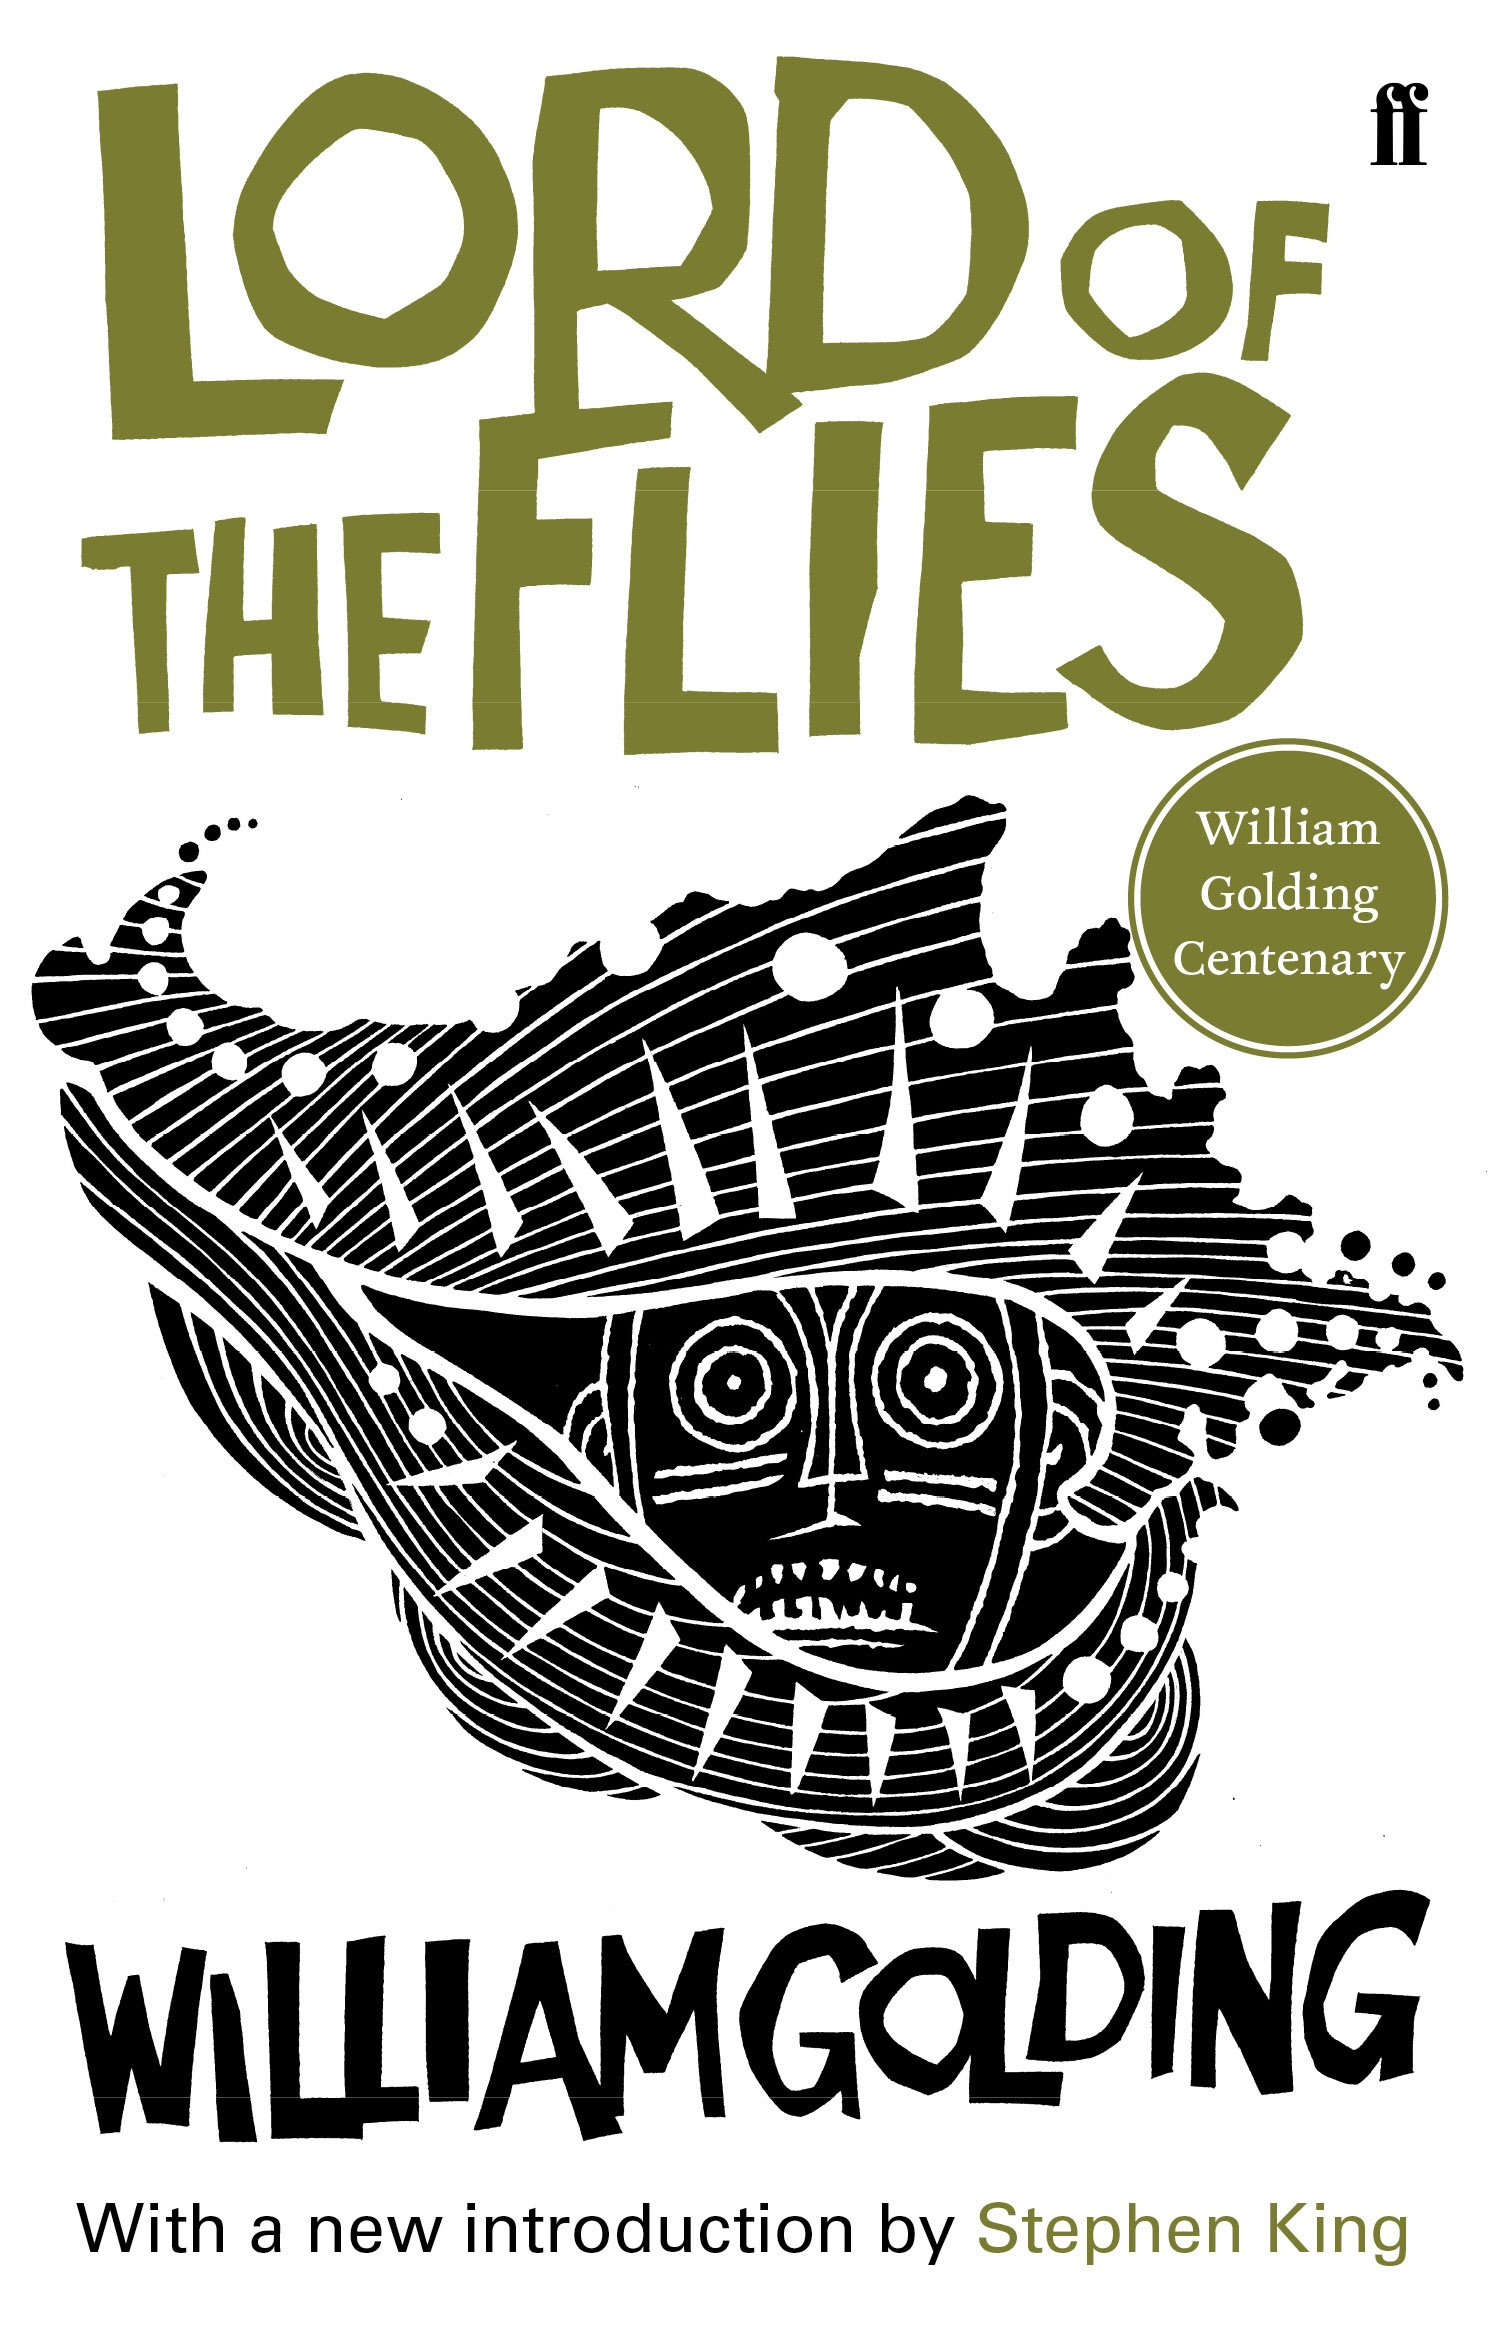 Lord of the flies with an introduction by stephen king amazon lord of the flies with an introduction by stephen king amazon william golding stephen king 9780571273577 books buycottarizona